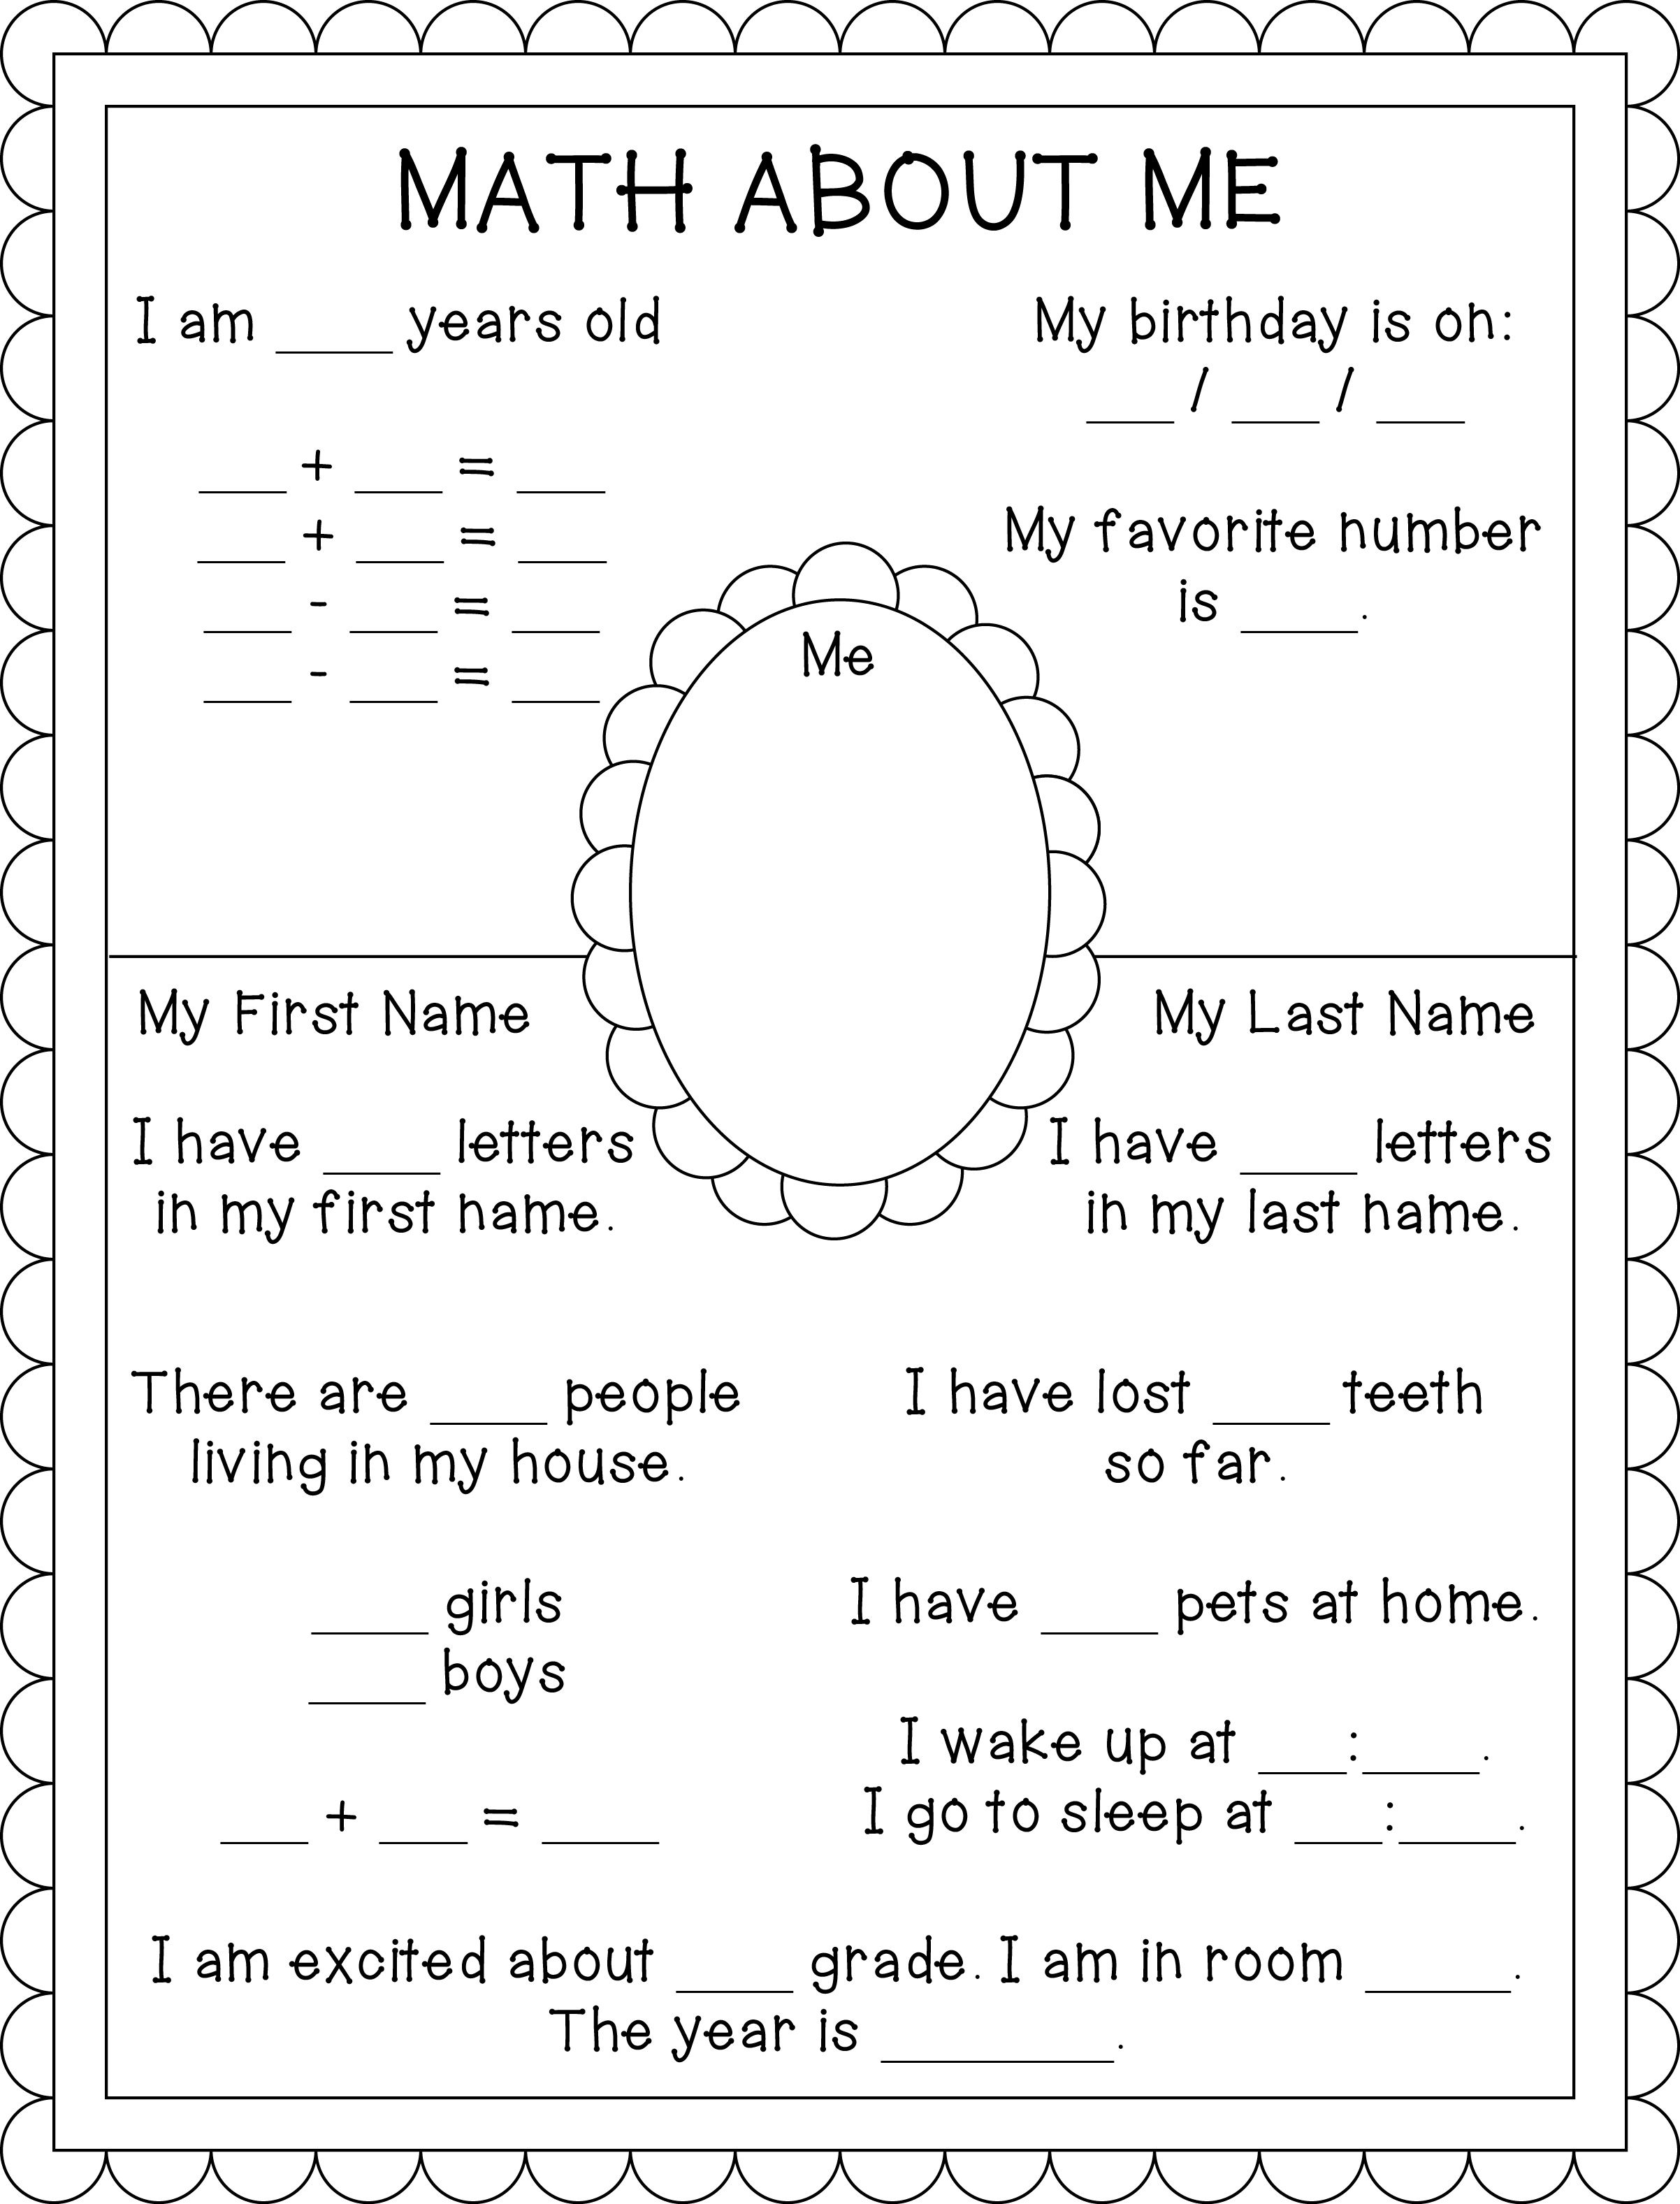 Uncategorized Math.about.com Multiplication Worksheets math about me page great for beginning of the year beginnning year